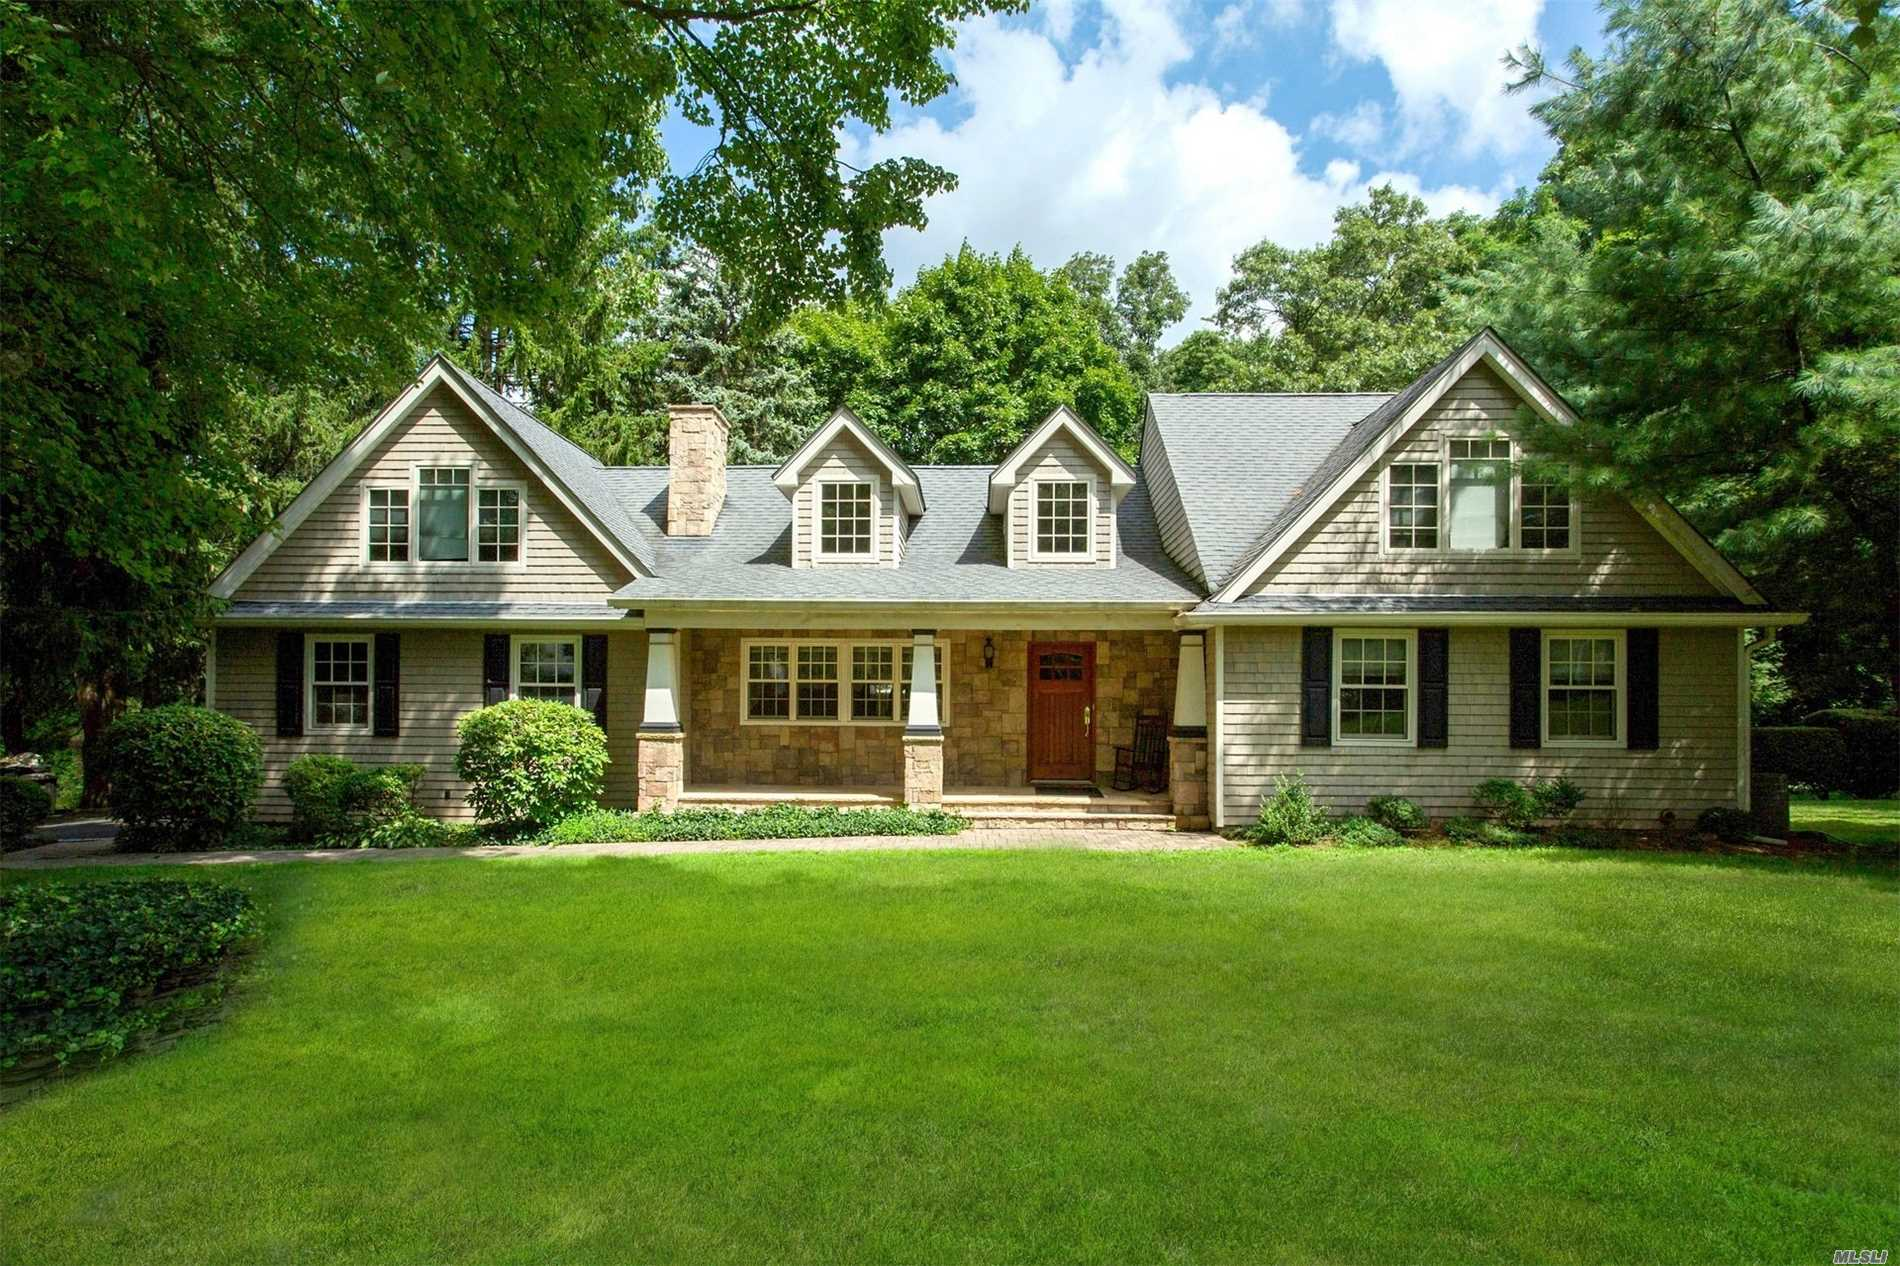 Welcome To This Fabulous, Expanded And Updated Adirondack Style Farm Ranch In Old Chester Hills With An Open Floor Plan, Gourmet Kitchen, Two Fireplaces, Grand Master Bedroom Suite. Located On A Wonderful Street Away From The Main Thoroughfares. Truly A Special Home.